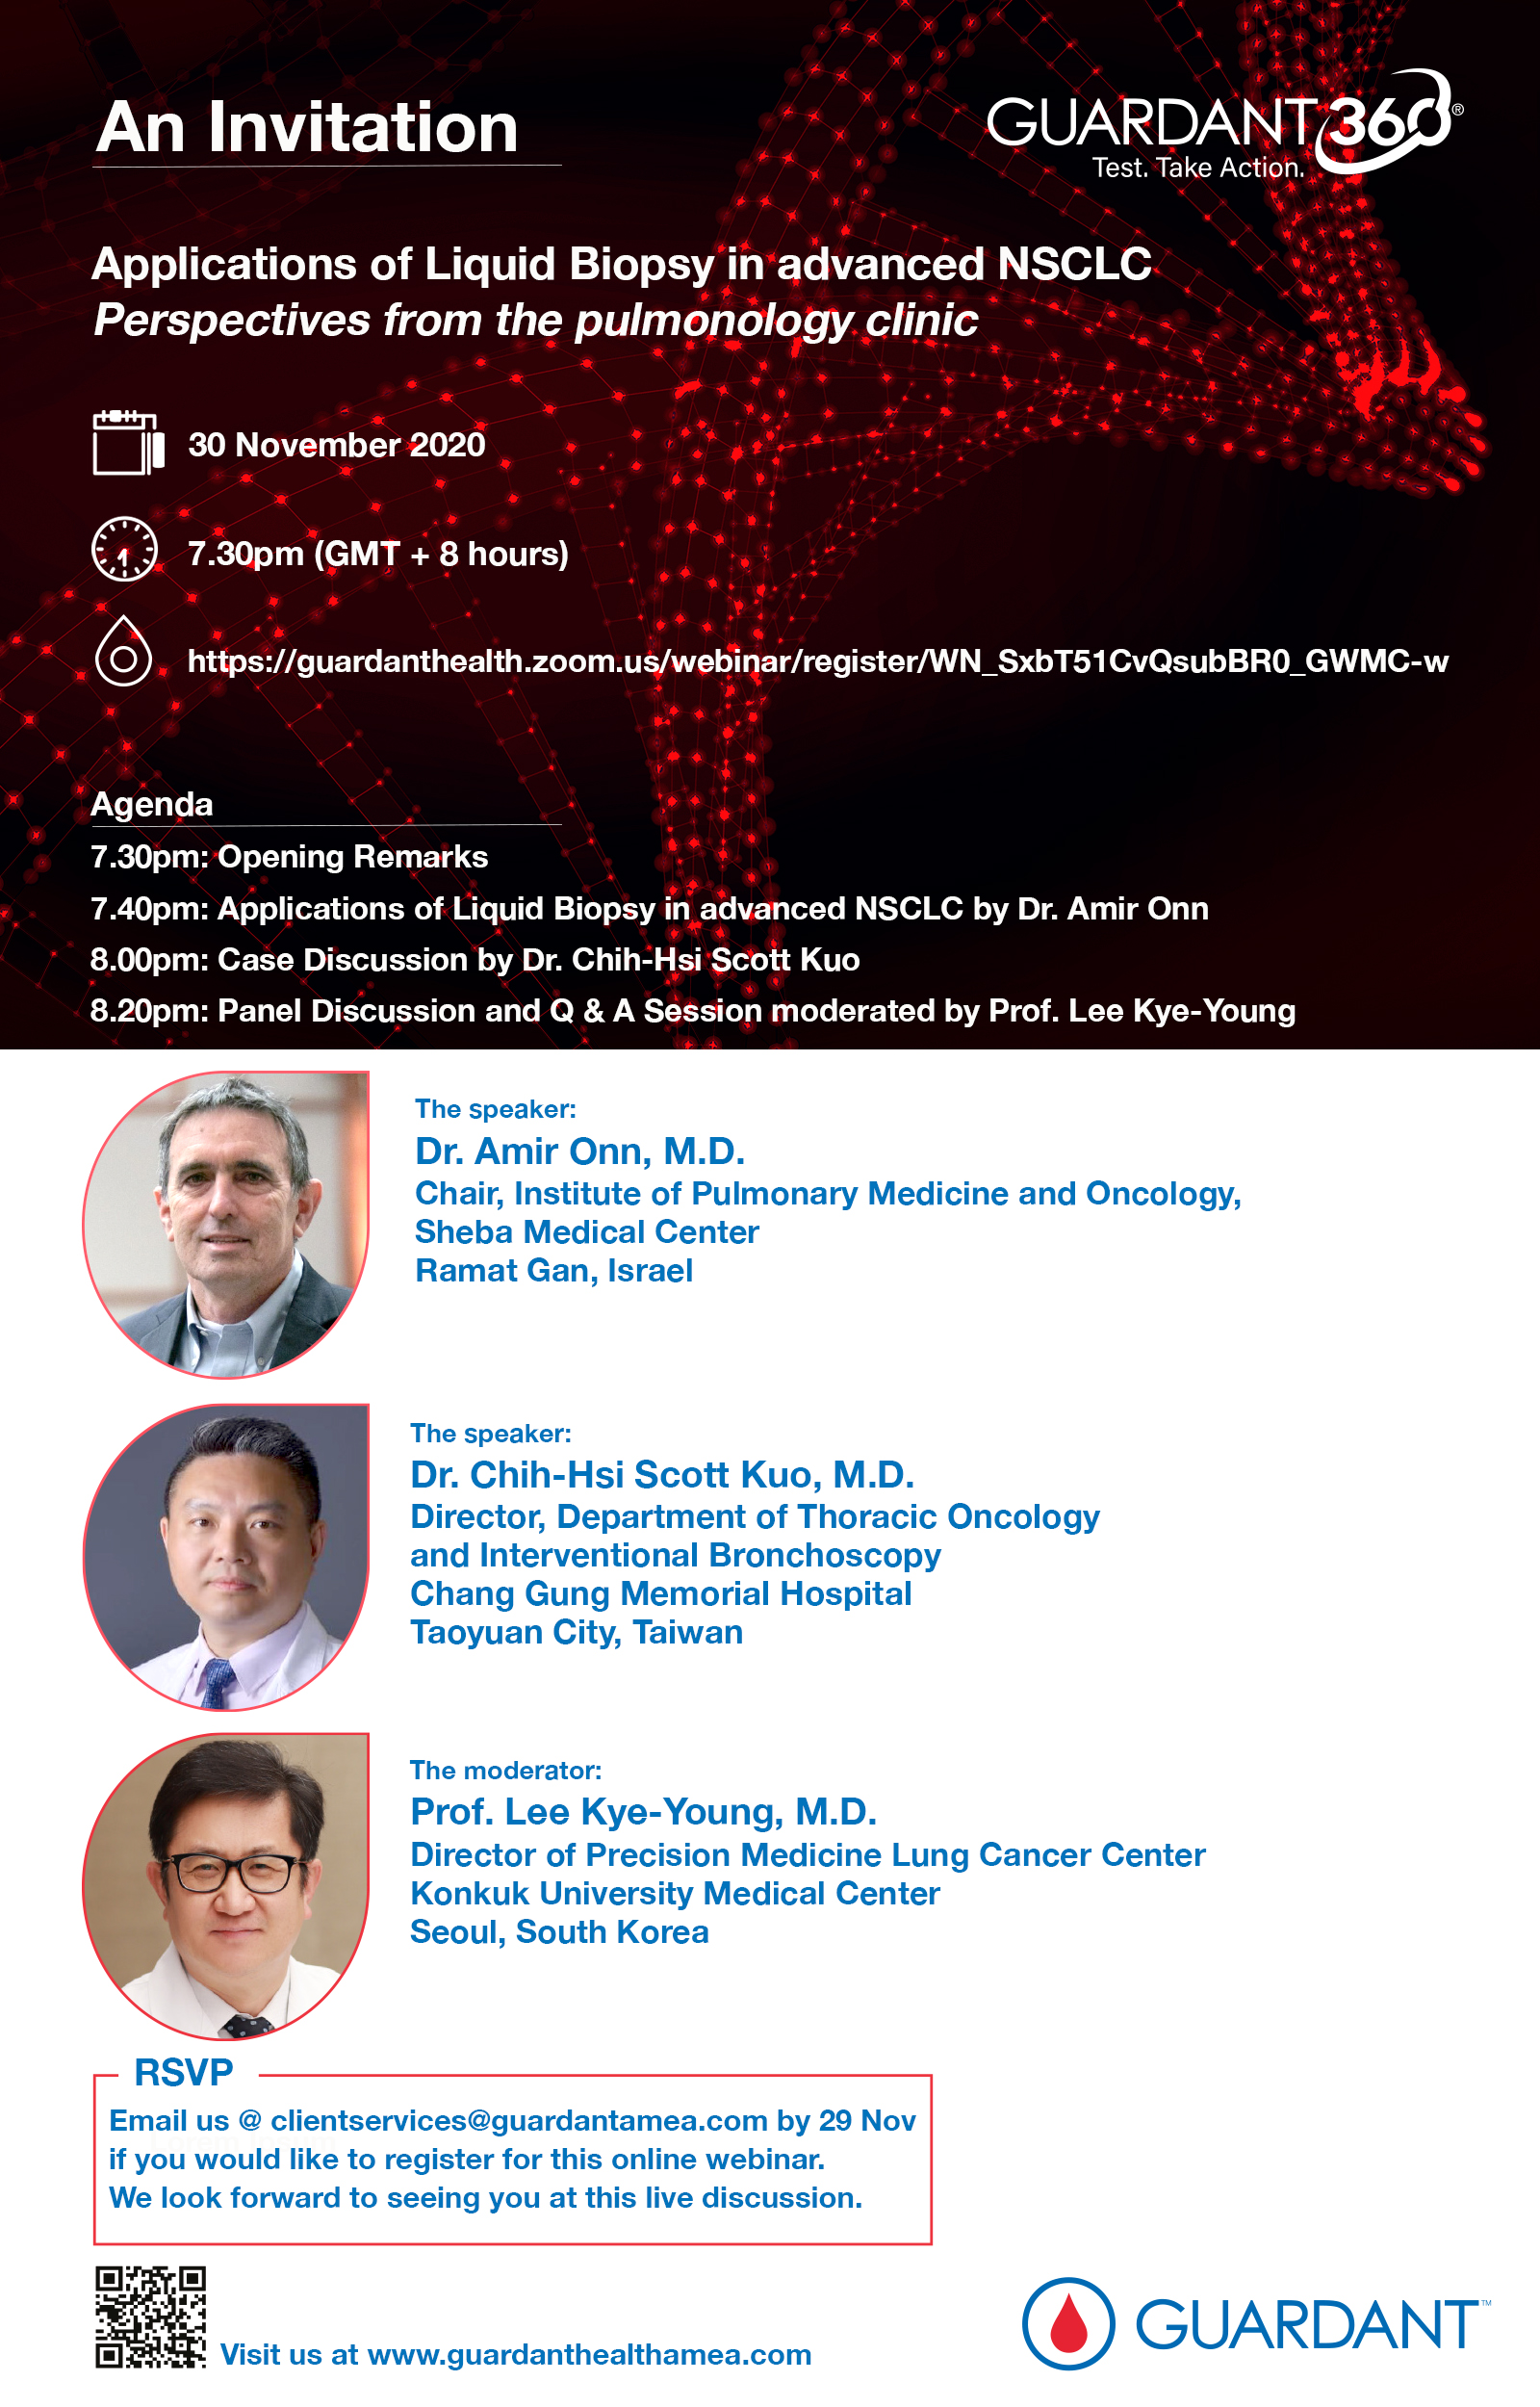 Applications of Liquid Biopsy in advanced NSCLC: Perspectives from the pulmonology clinic (Webinar)